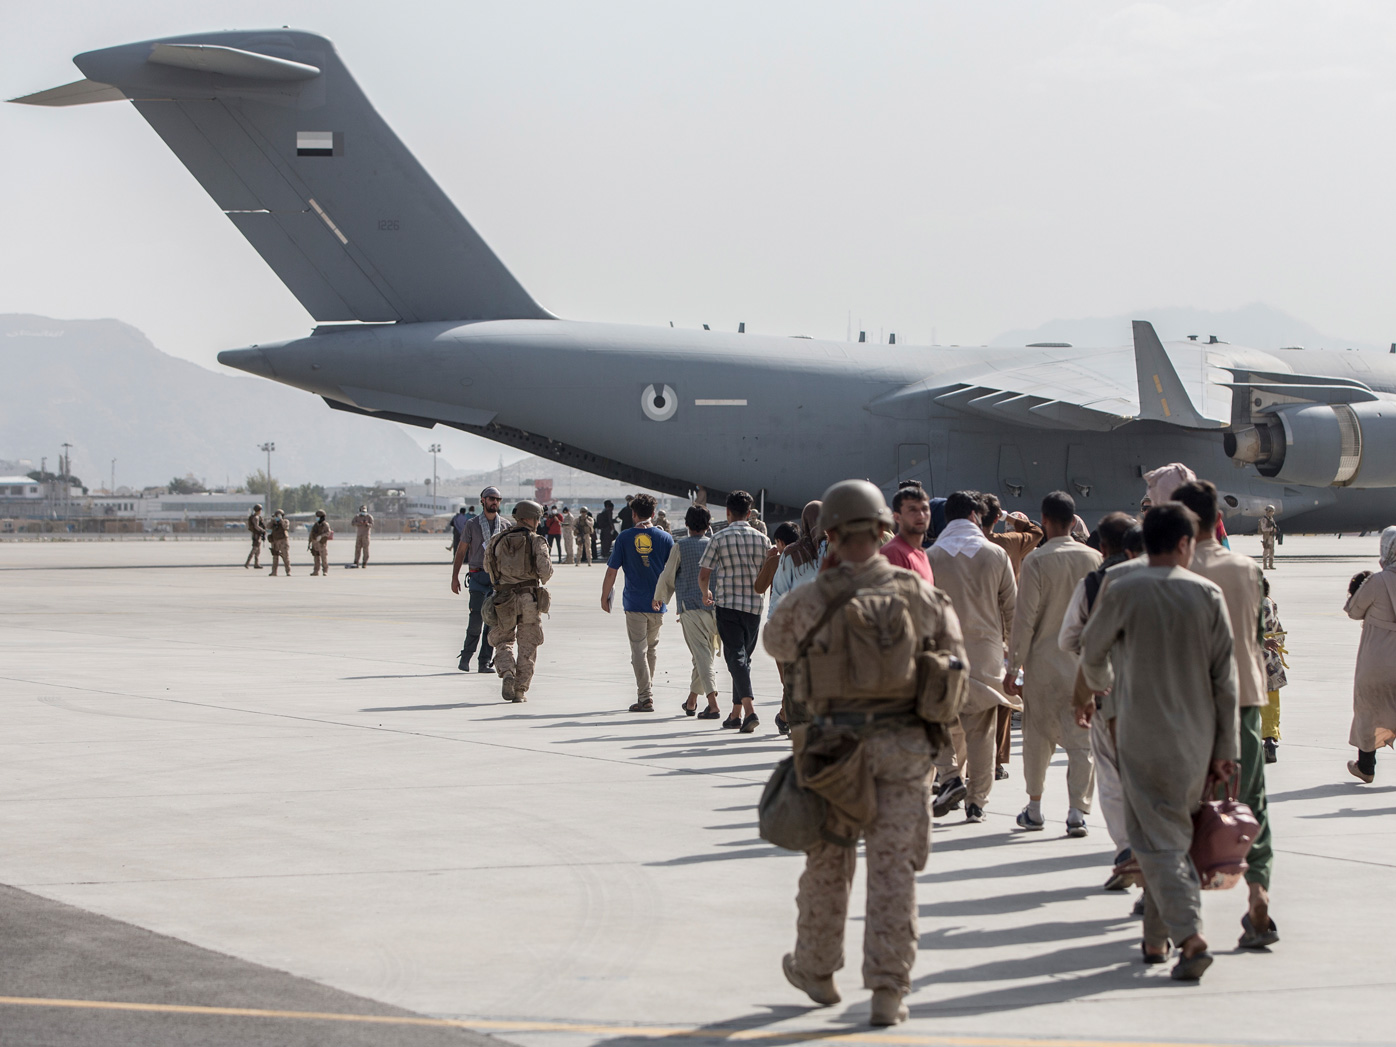 The US is considering extending a deadline beyond August 31 to help more people evacuate from Kabul and Afghanistan.